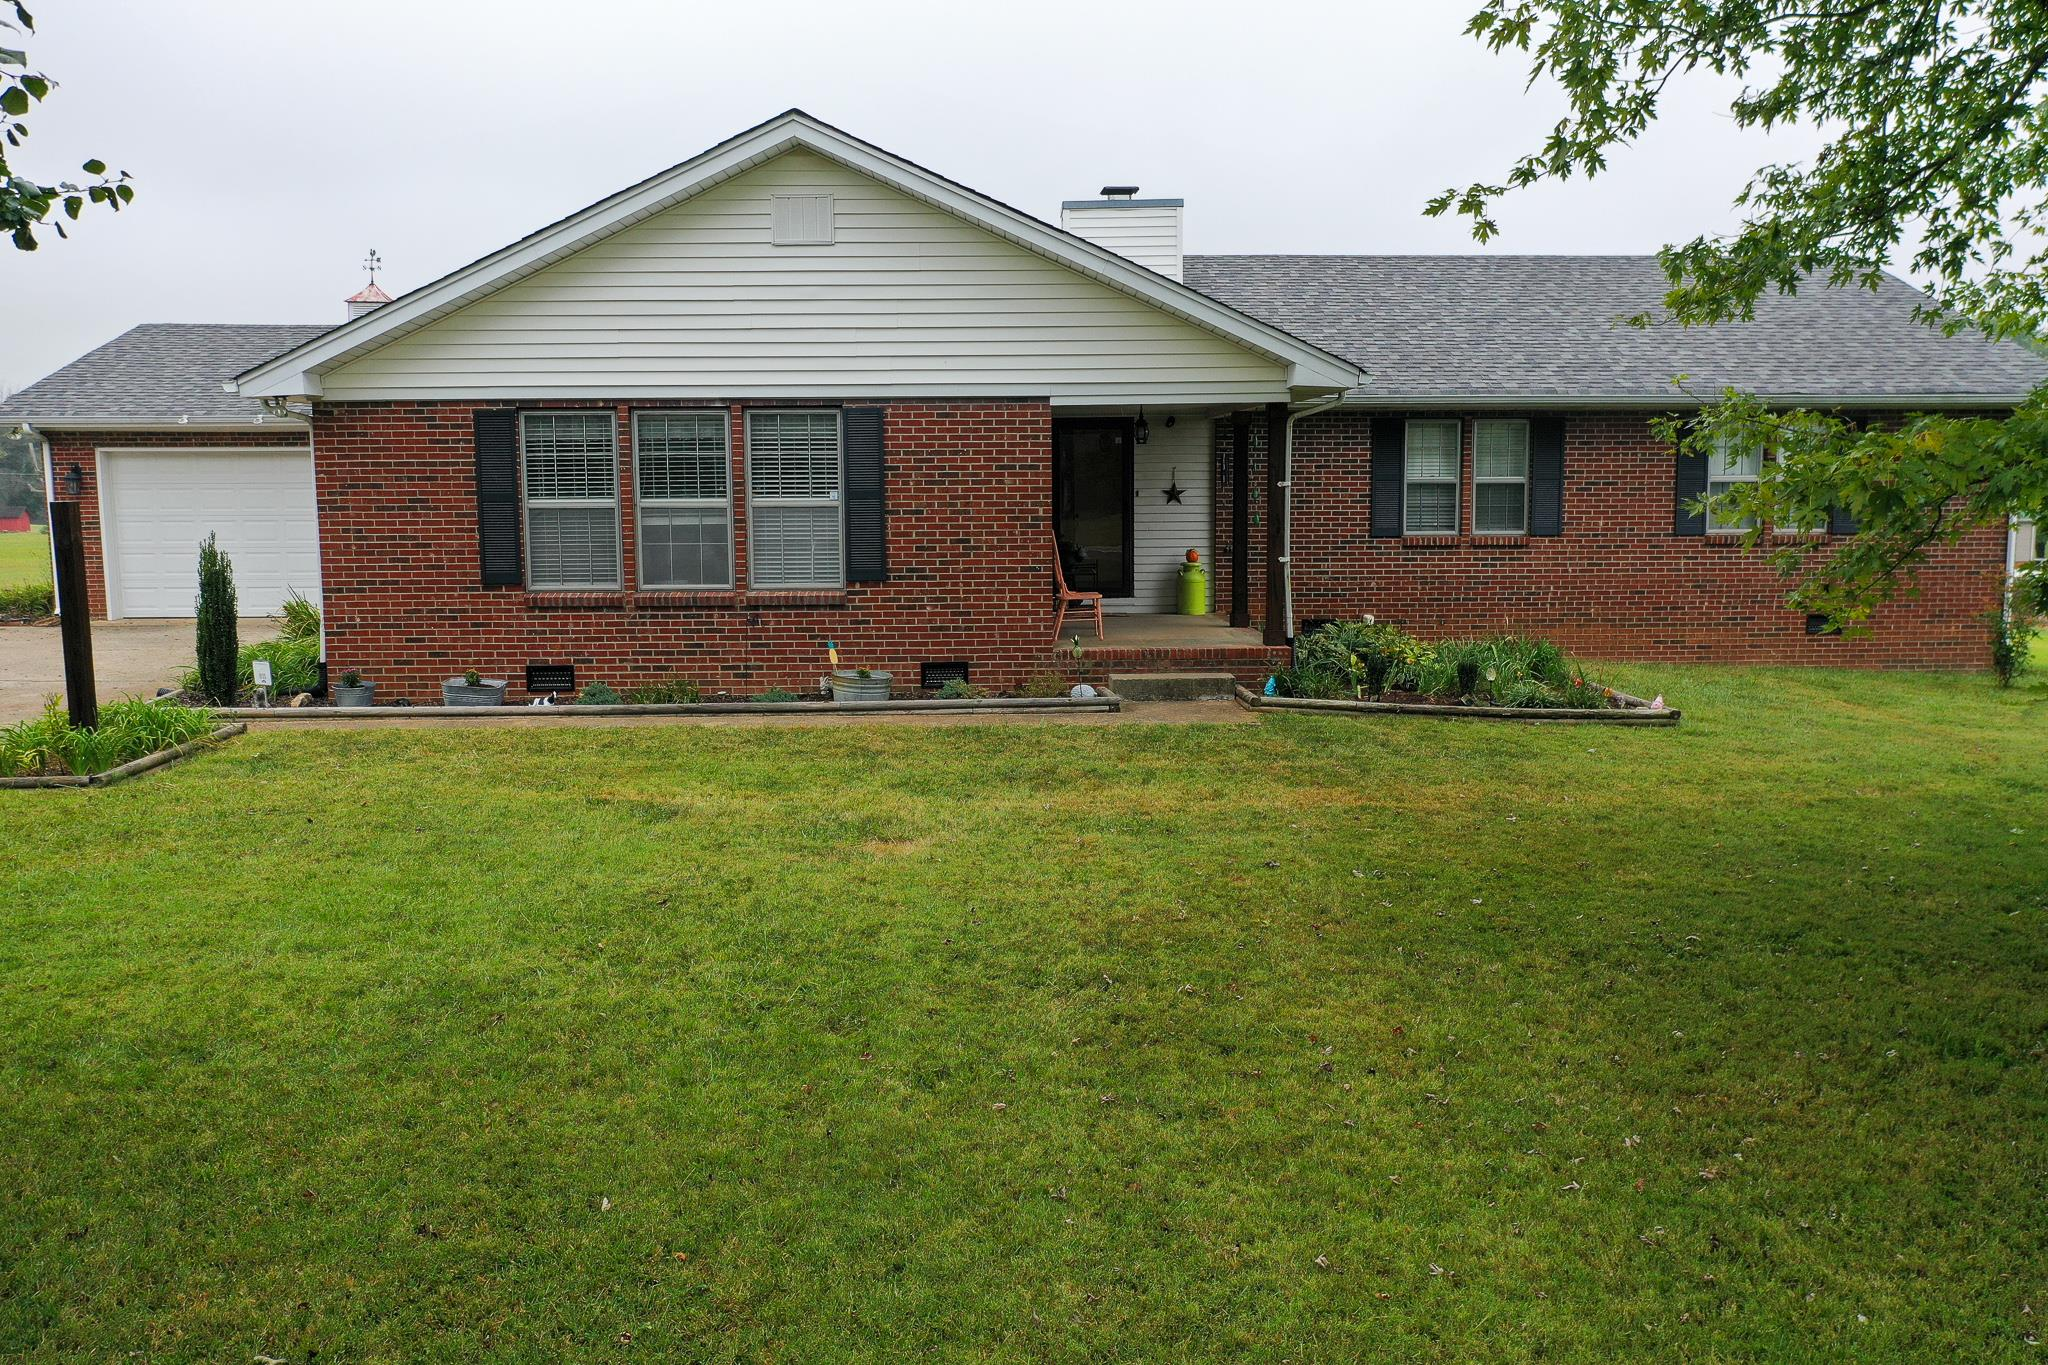 $240,000 - 4Br/3Ba -  for Sale in None, Cottontown